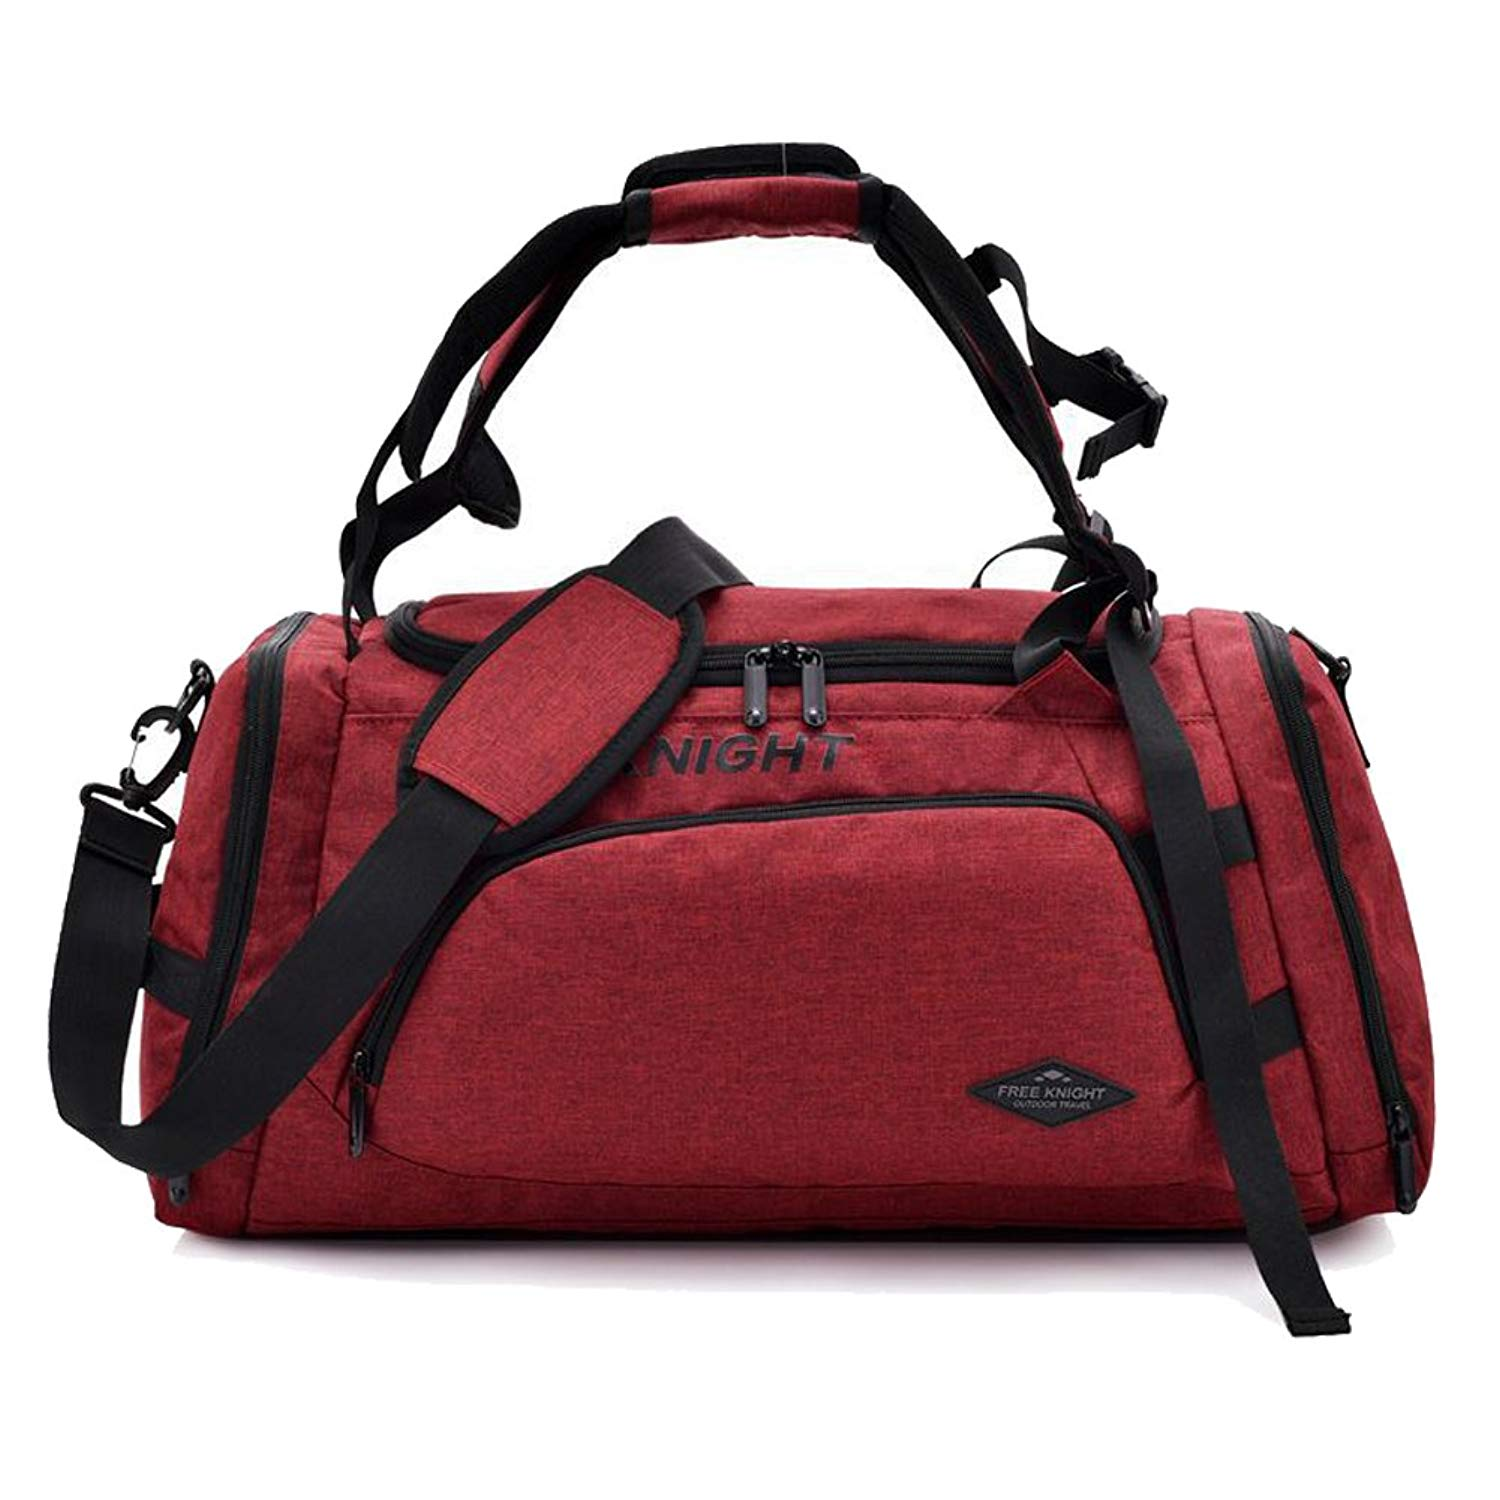 191cbbf92b7f Get Quotations · SLIN Travel Duffles Travelling Bag Sports Holdall with  Special Shoes Space